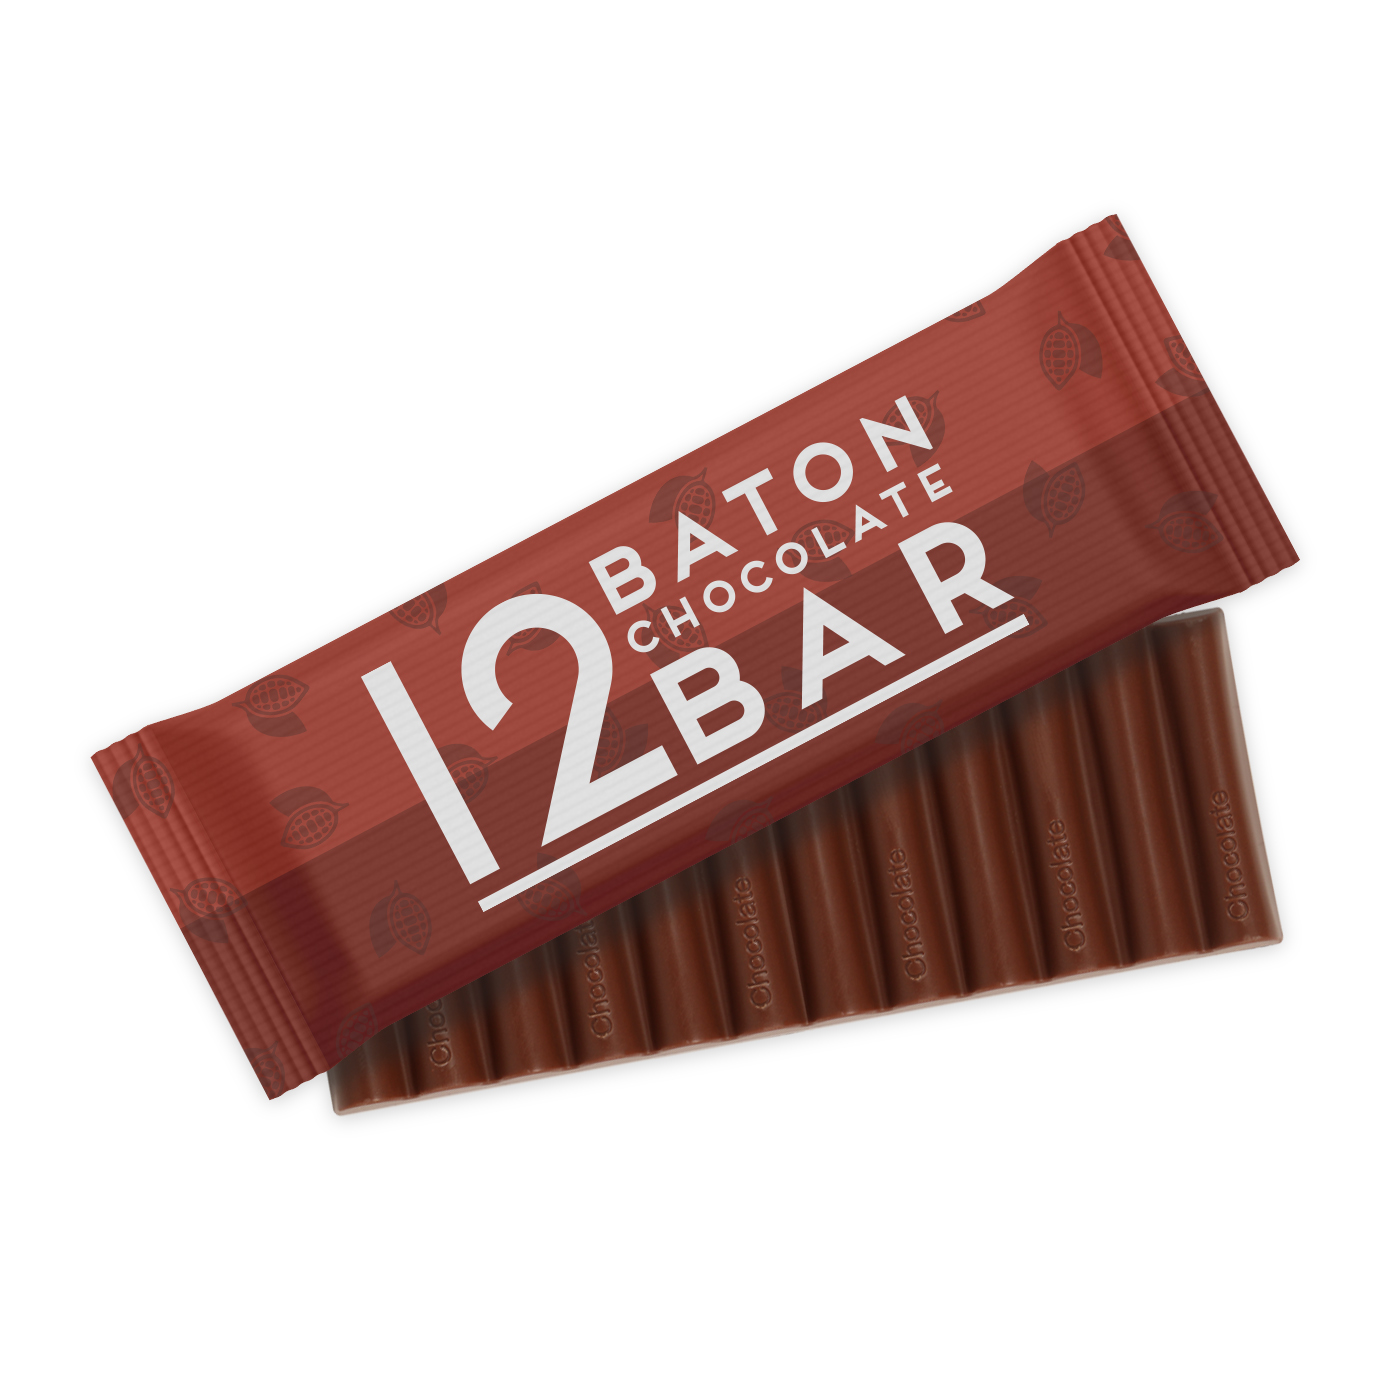 12 BATON CHOCLATE BAR